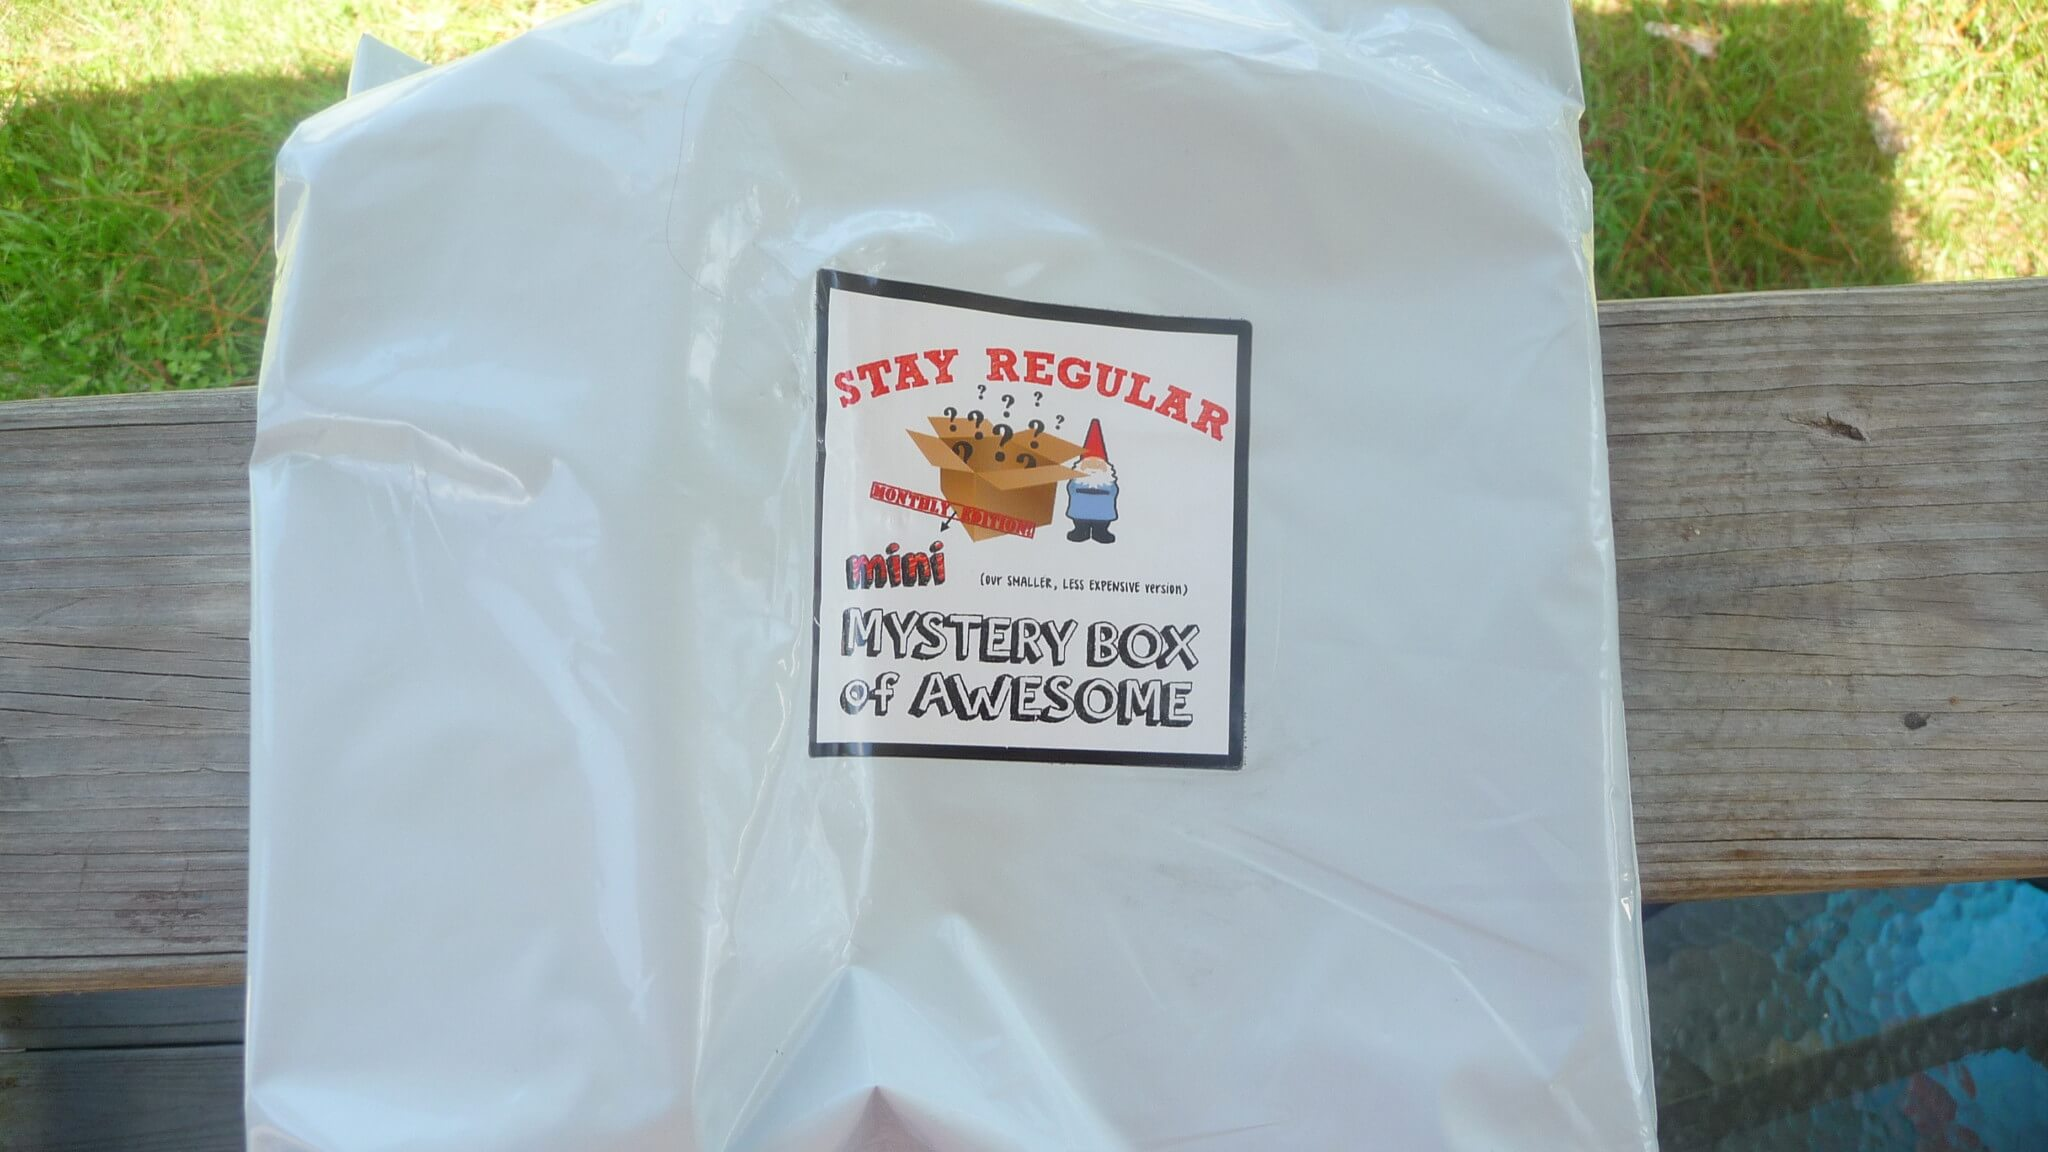 September 2016 Mini Monthly Mystery Box of Awesome Subscription Box Review